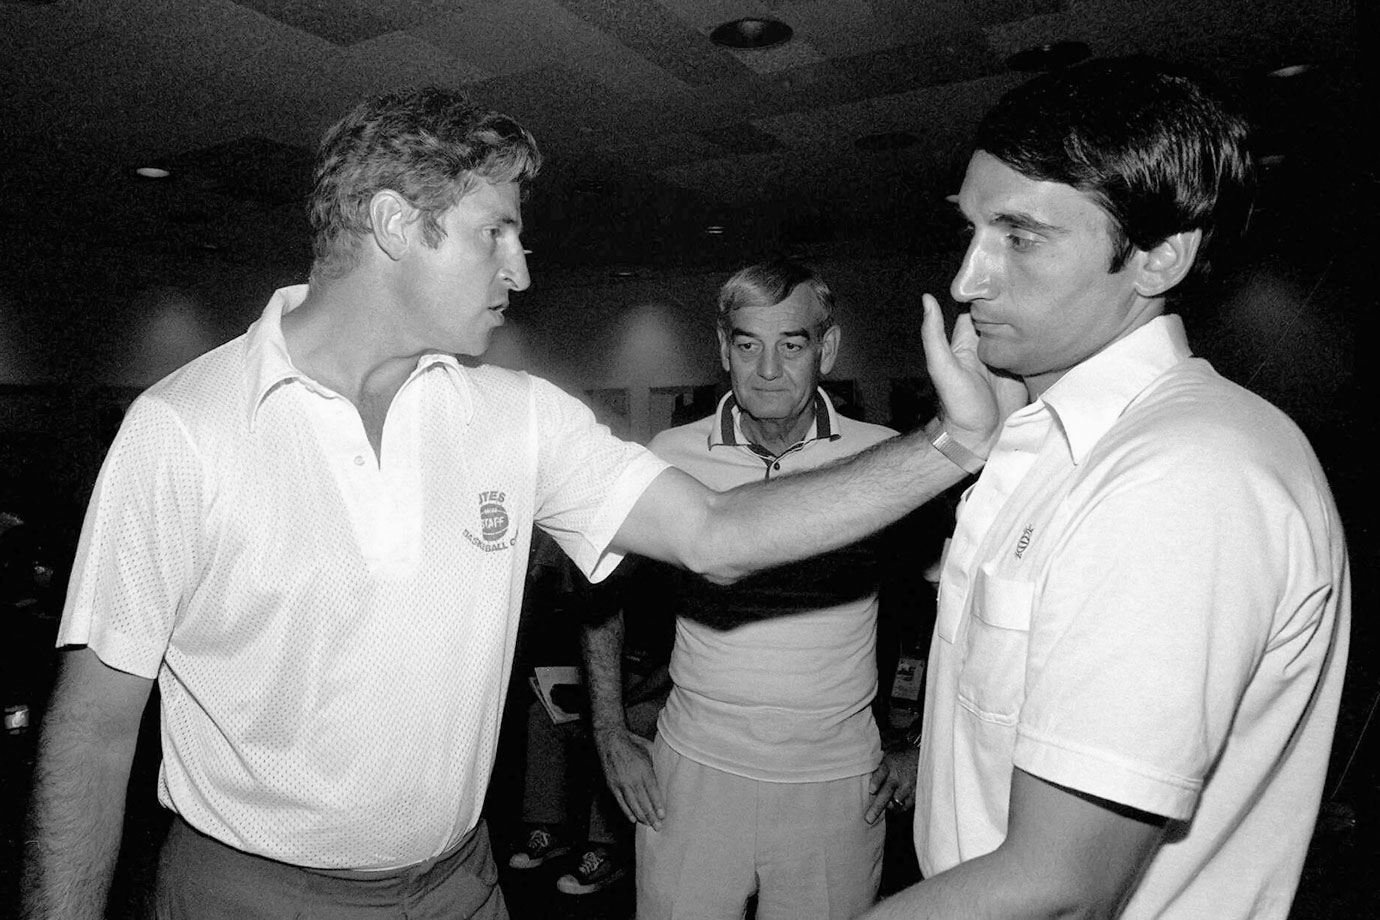 Bob Knight uses Mike Krzyzewski to explain his arrest in San Juan for getting into a pushing match with a Puerto Rican policeman. Krzyzewski was Knight's assistant at Indiana from 1974 to '75 and helped him coach the United States at the Pan American games in 1979.